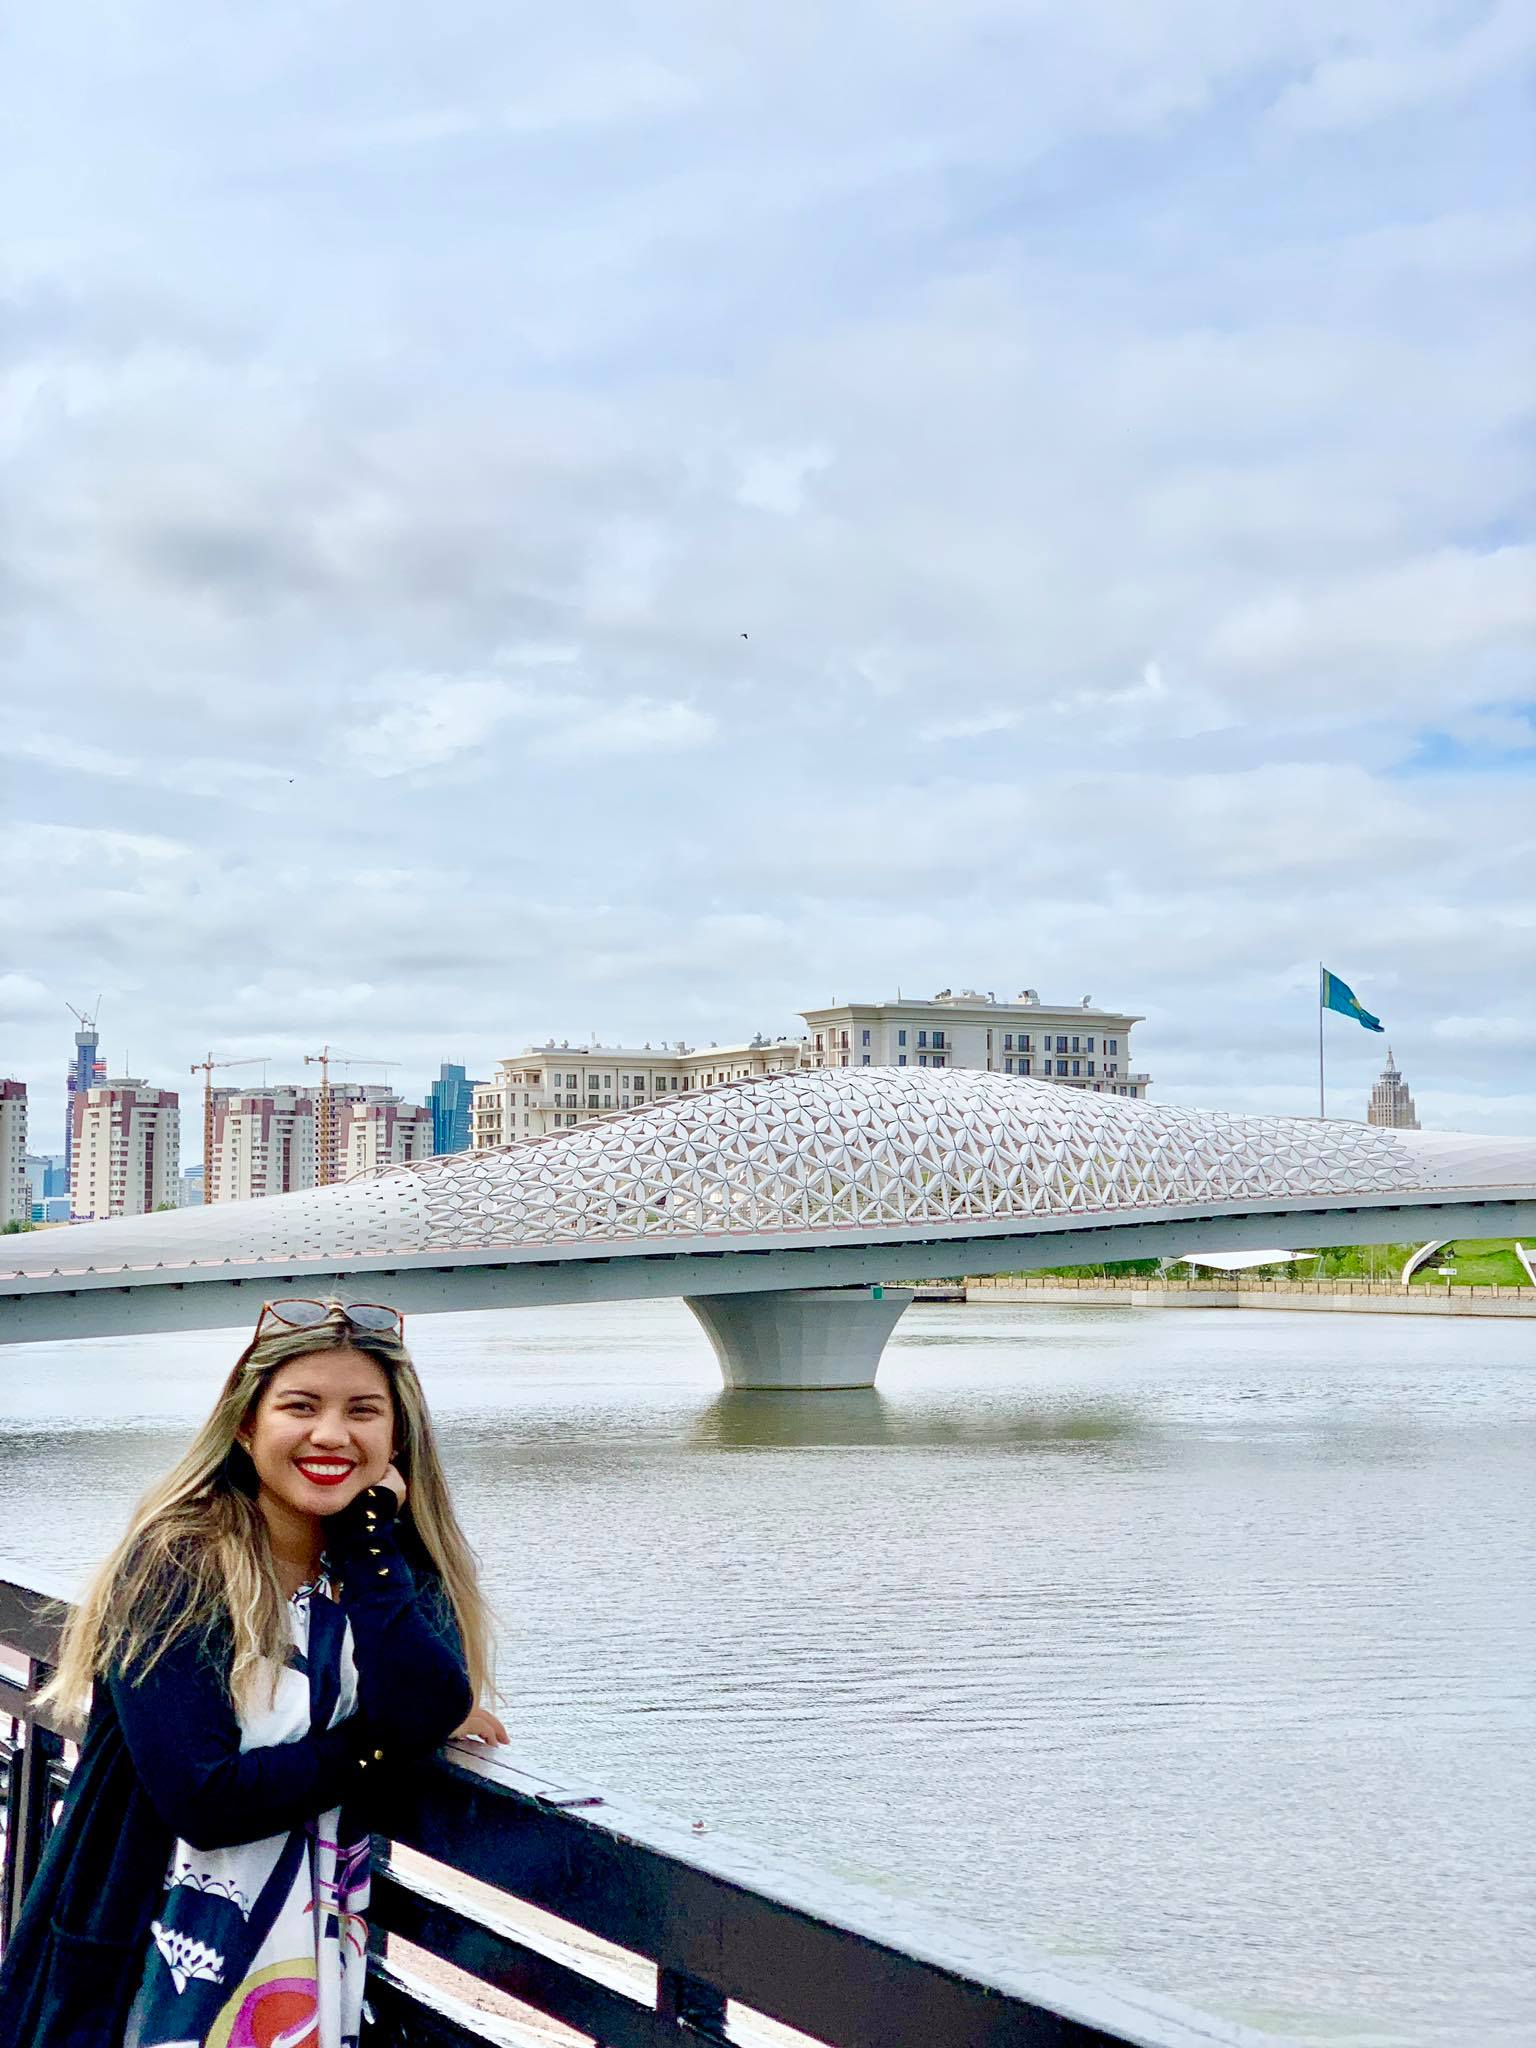 Kach Solo Travels in 2019 Nursultan  Astana - the City of the Future8.jpg